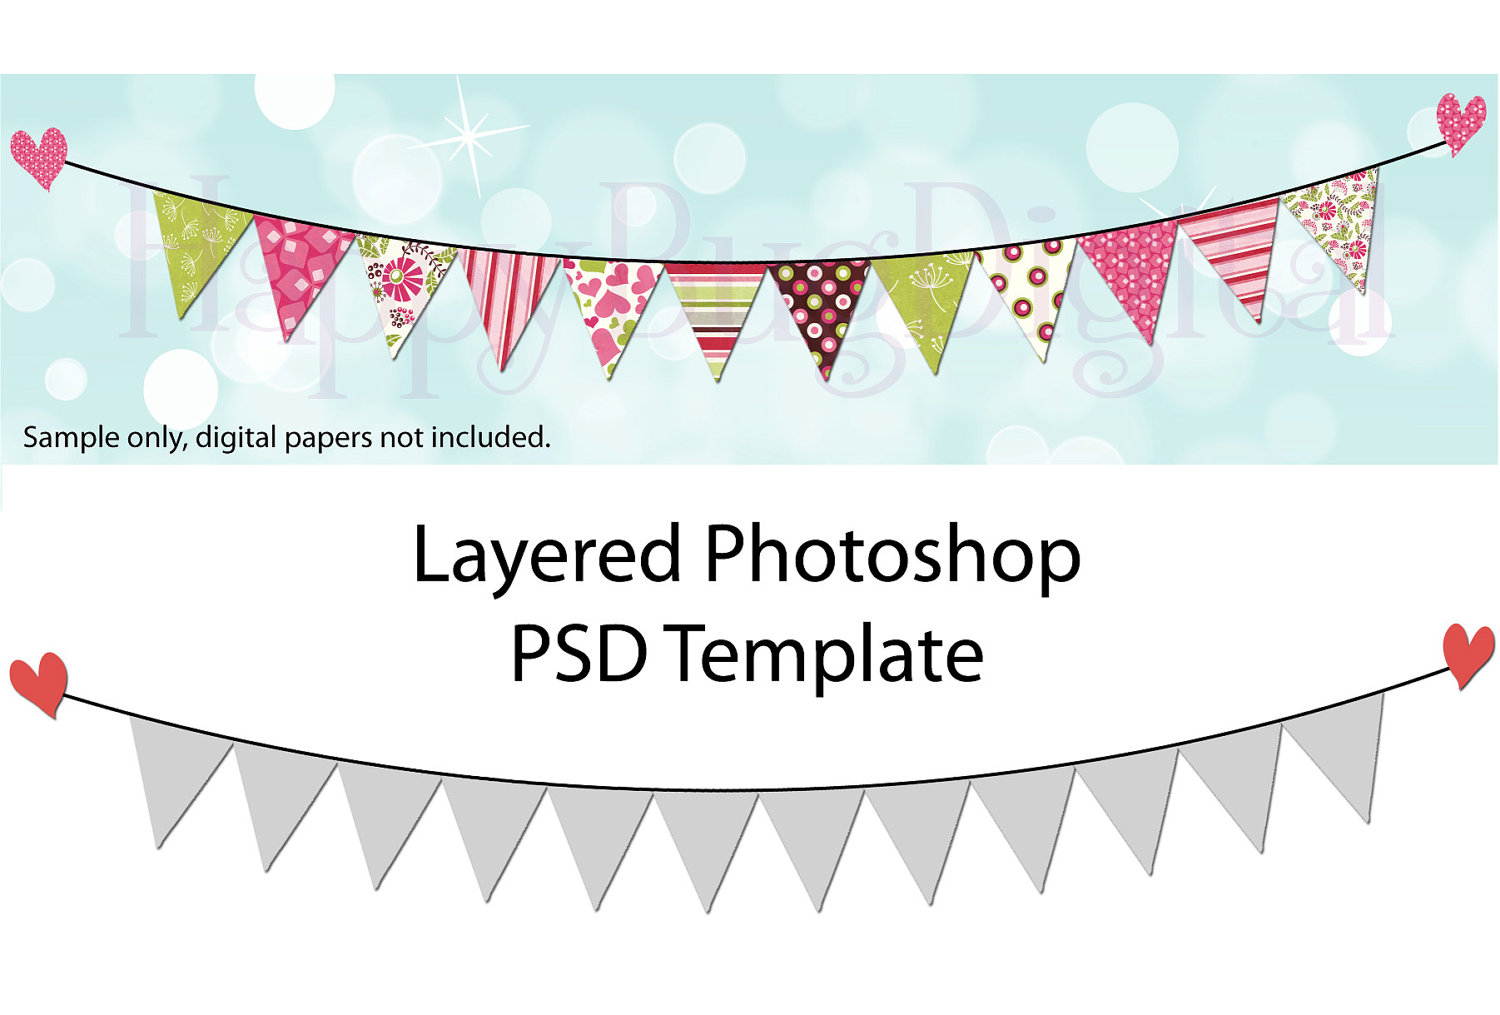 Photoshop clipart banner Flag Bunting DIGITAL Pennant Template